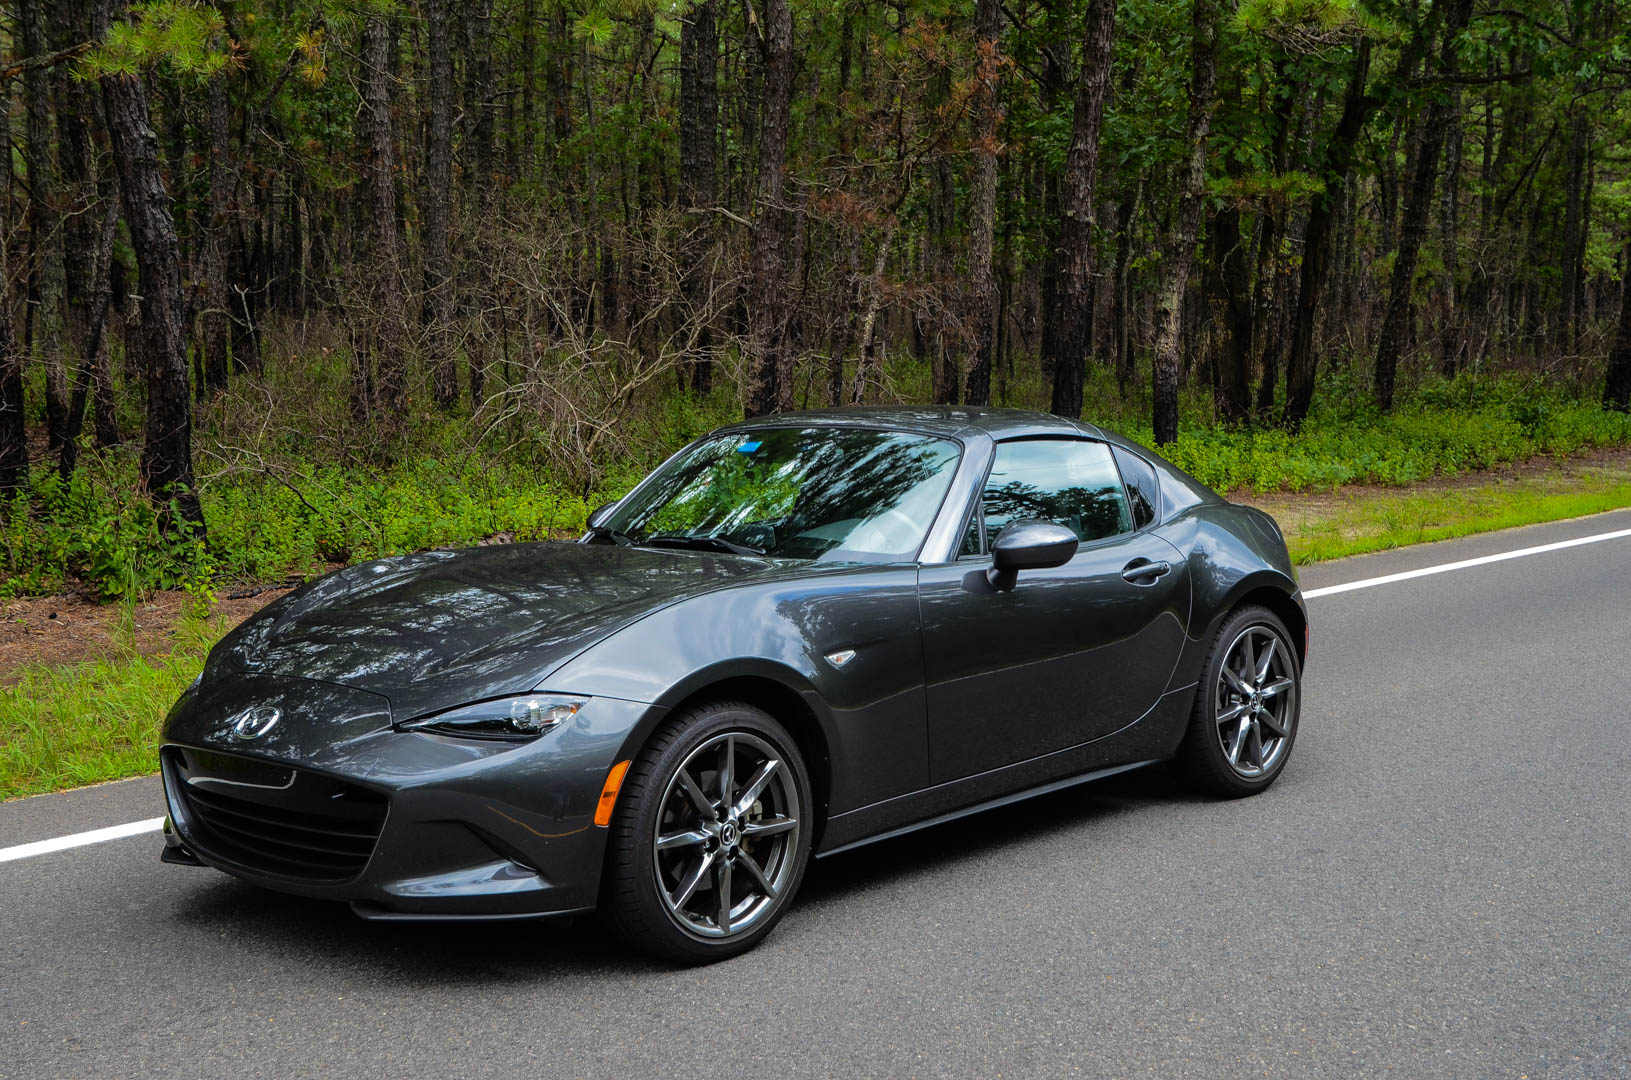 2017 Mazda Miata Price >> FIRST DRIVE: Mazda MX-5 RF -- A Breath of Fresh Air